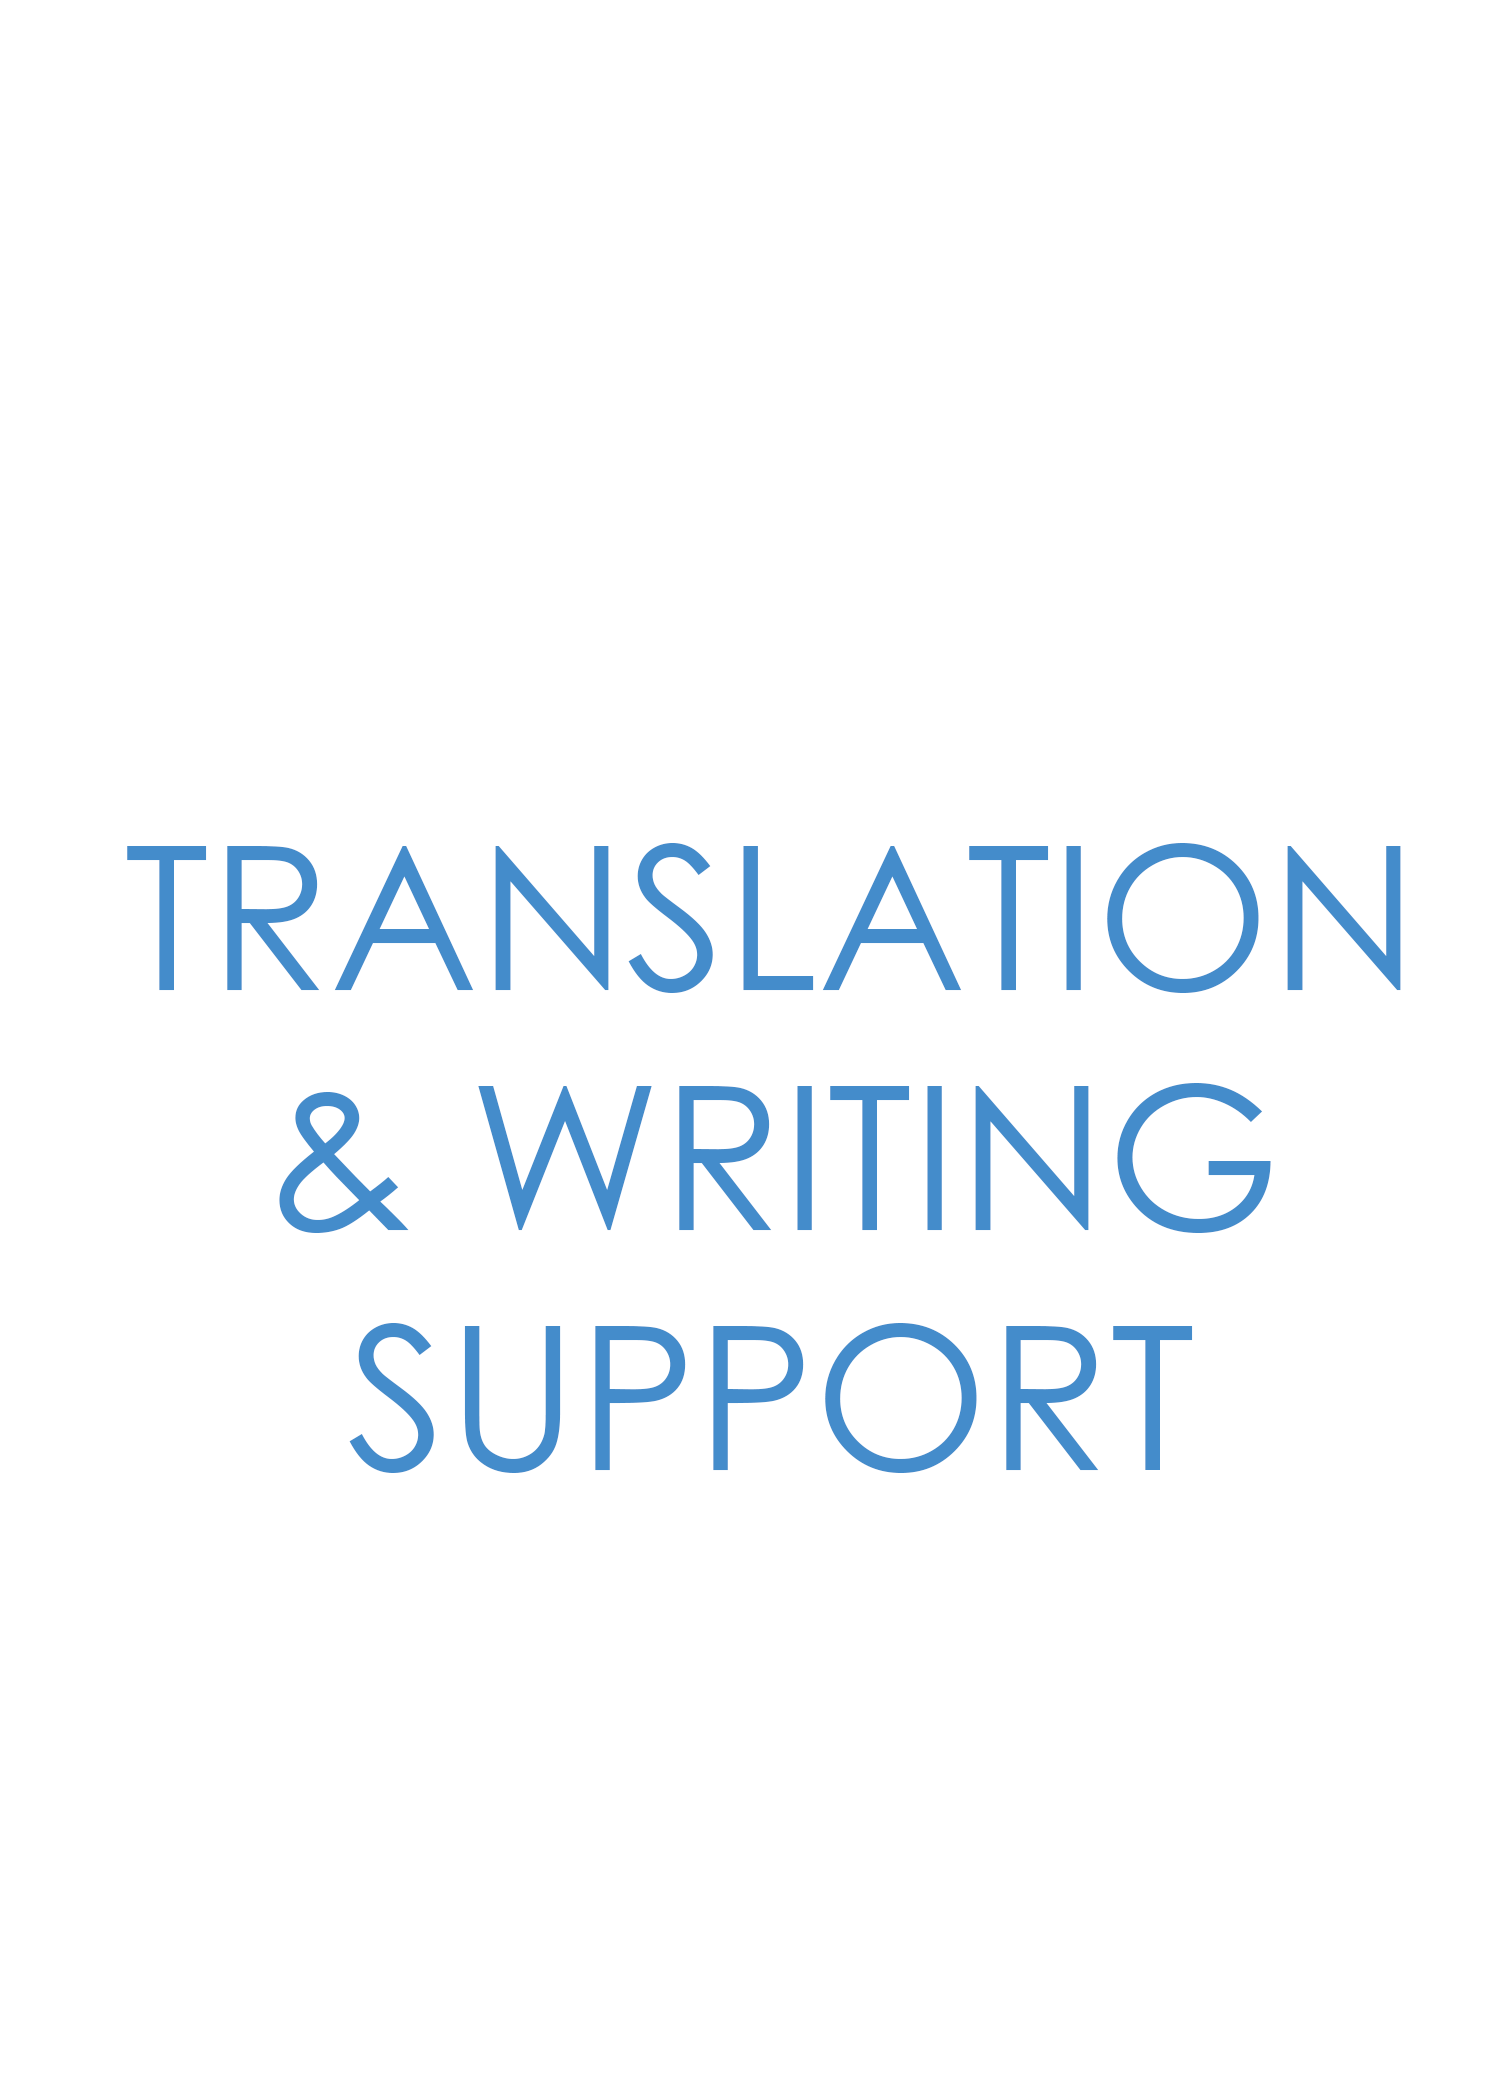 TRANSLATION AND WRITING SUPPORT.png